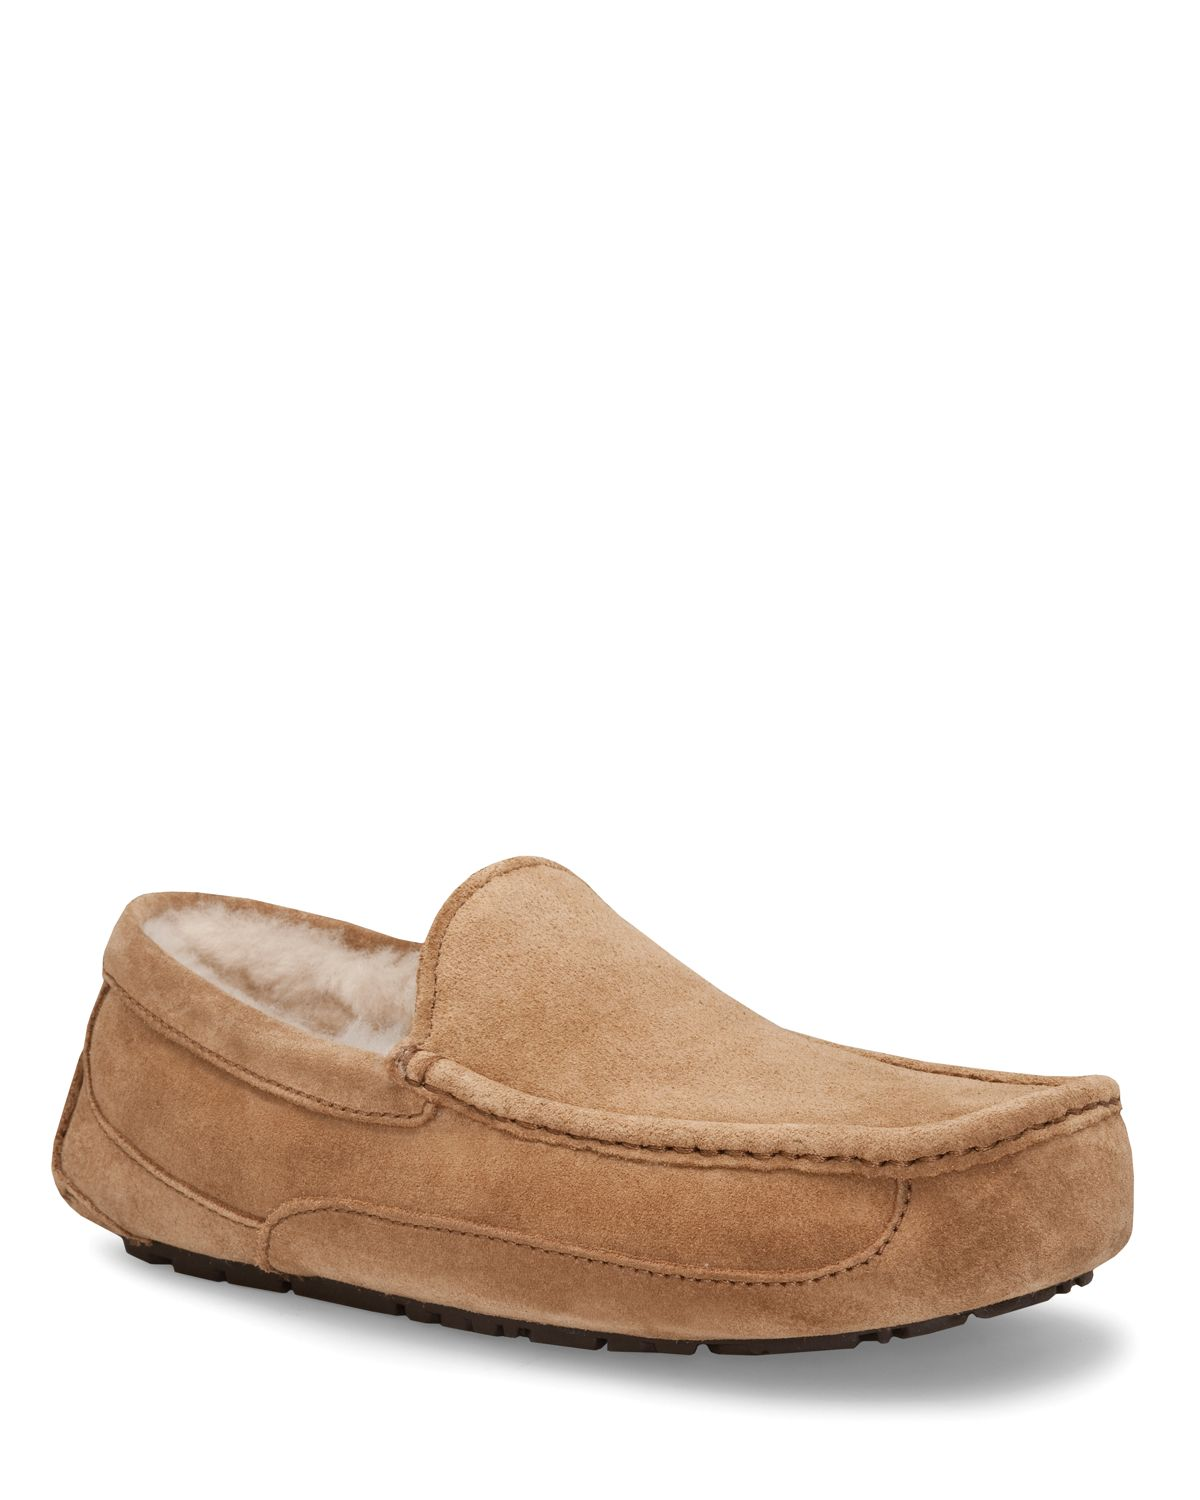 ugg slipper mens sale